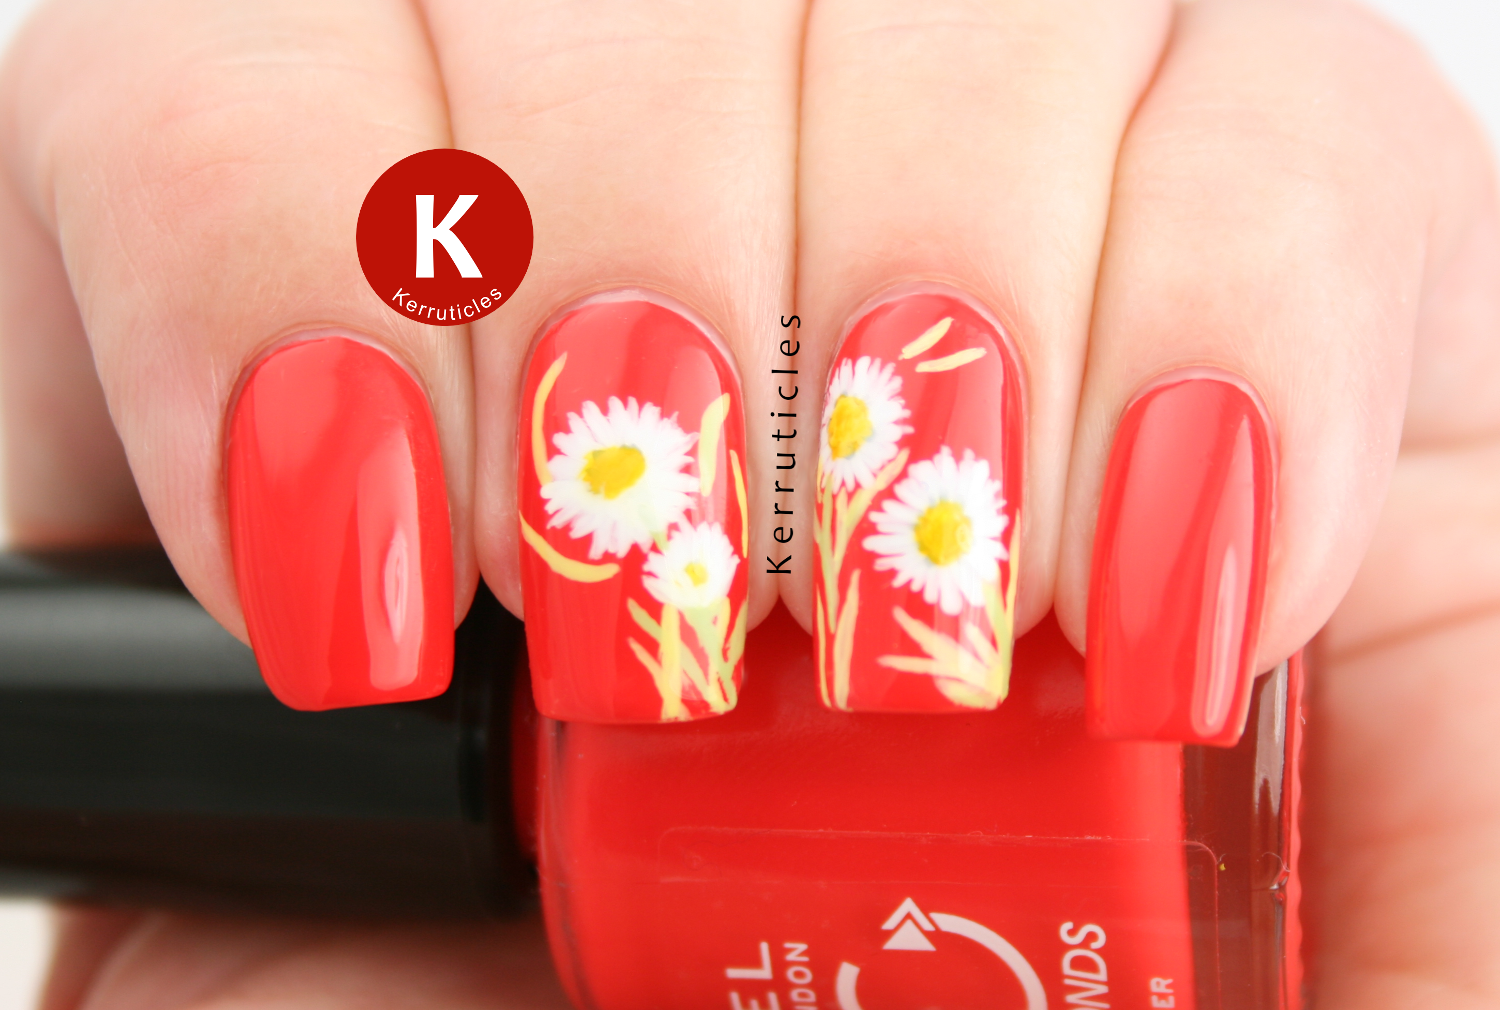 Freehand daisies over orange-red, using acrylic paints and Rimmel Sun Downer